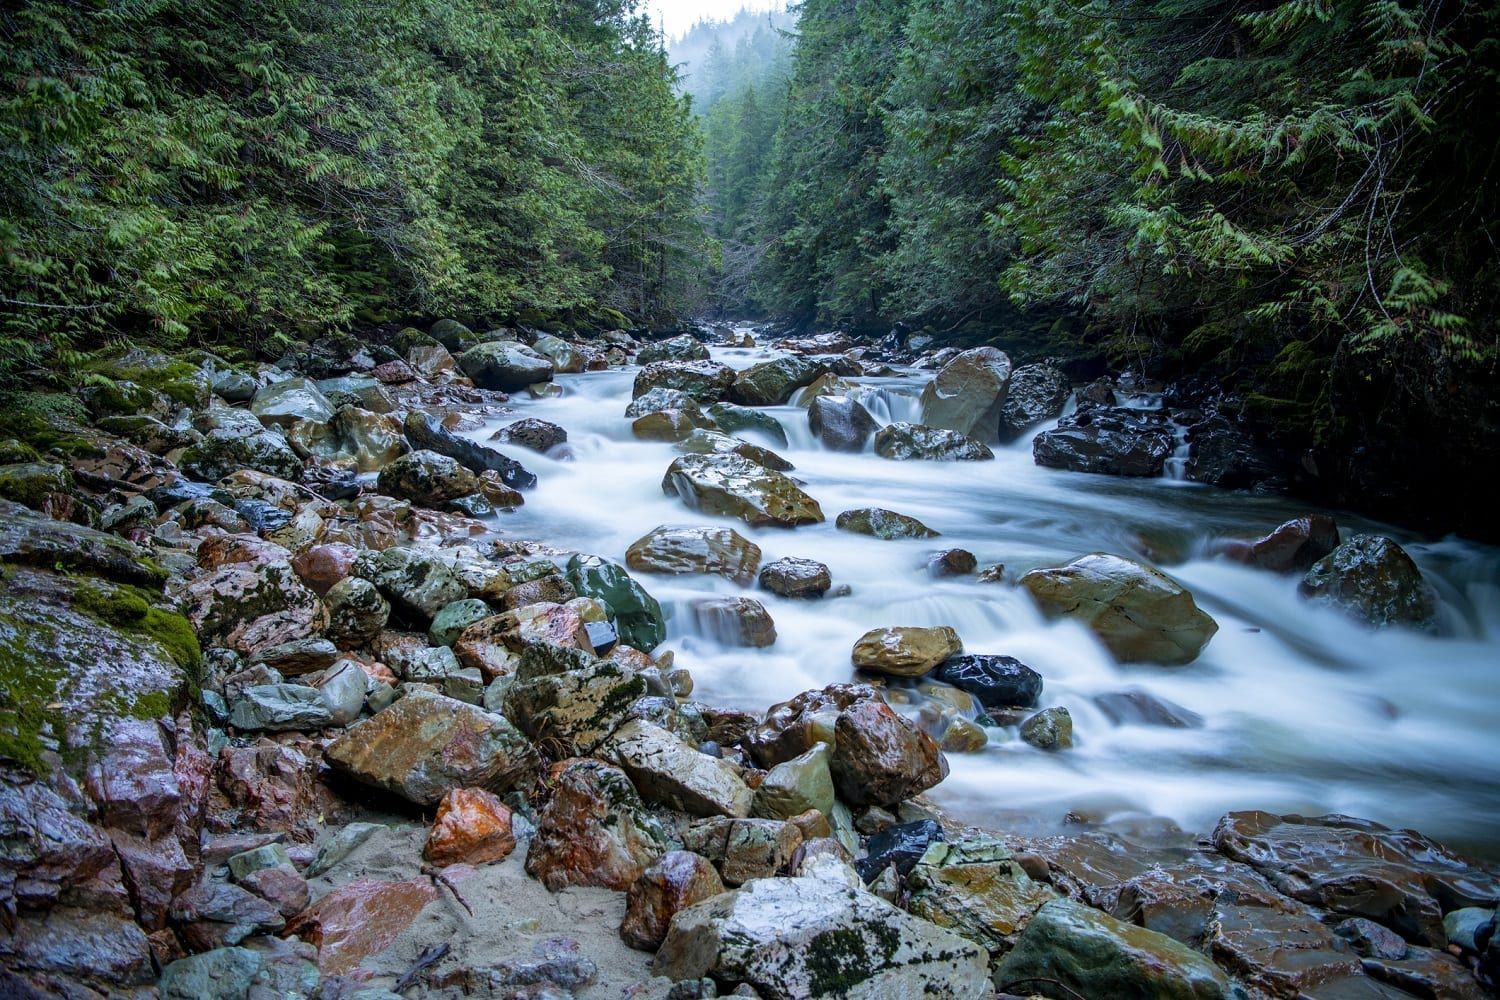 Washington State stream full of rocks: ID 146431858 © Kurt Adams | Dreamstime.com